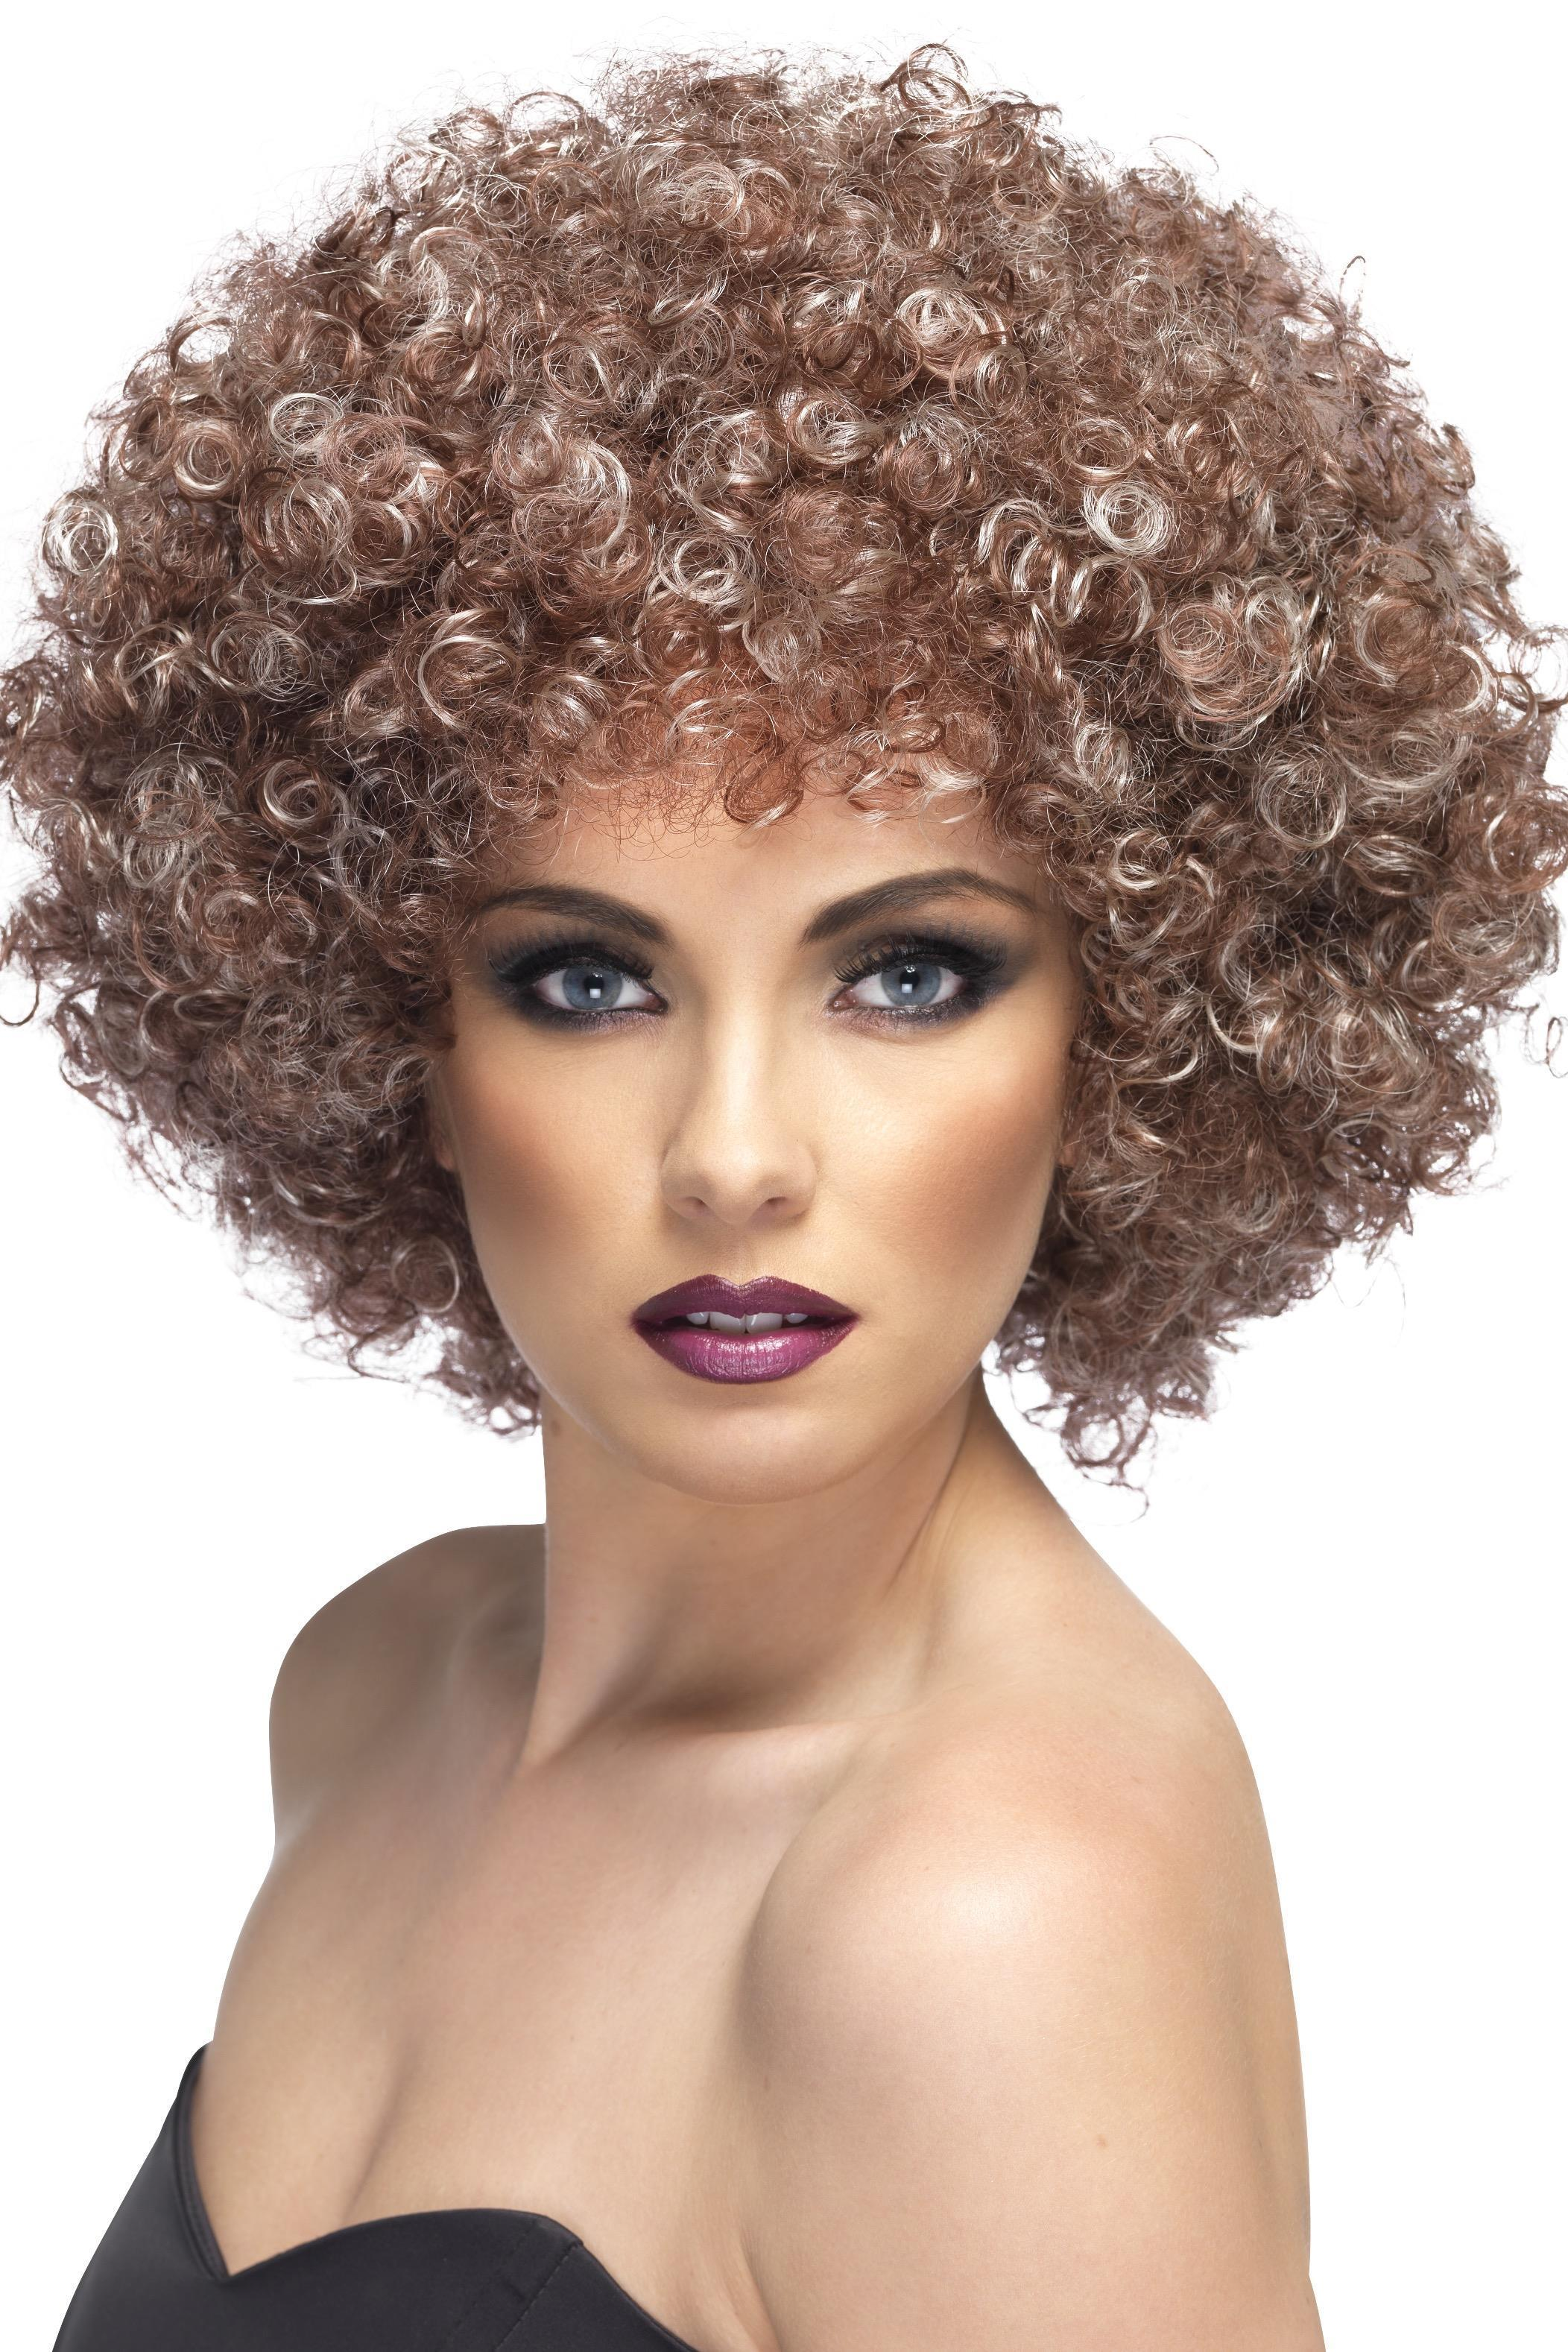 70s Afro Wig Blonde & Brown